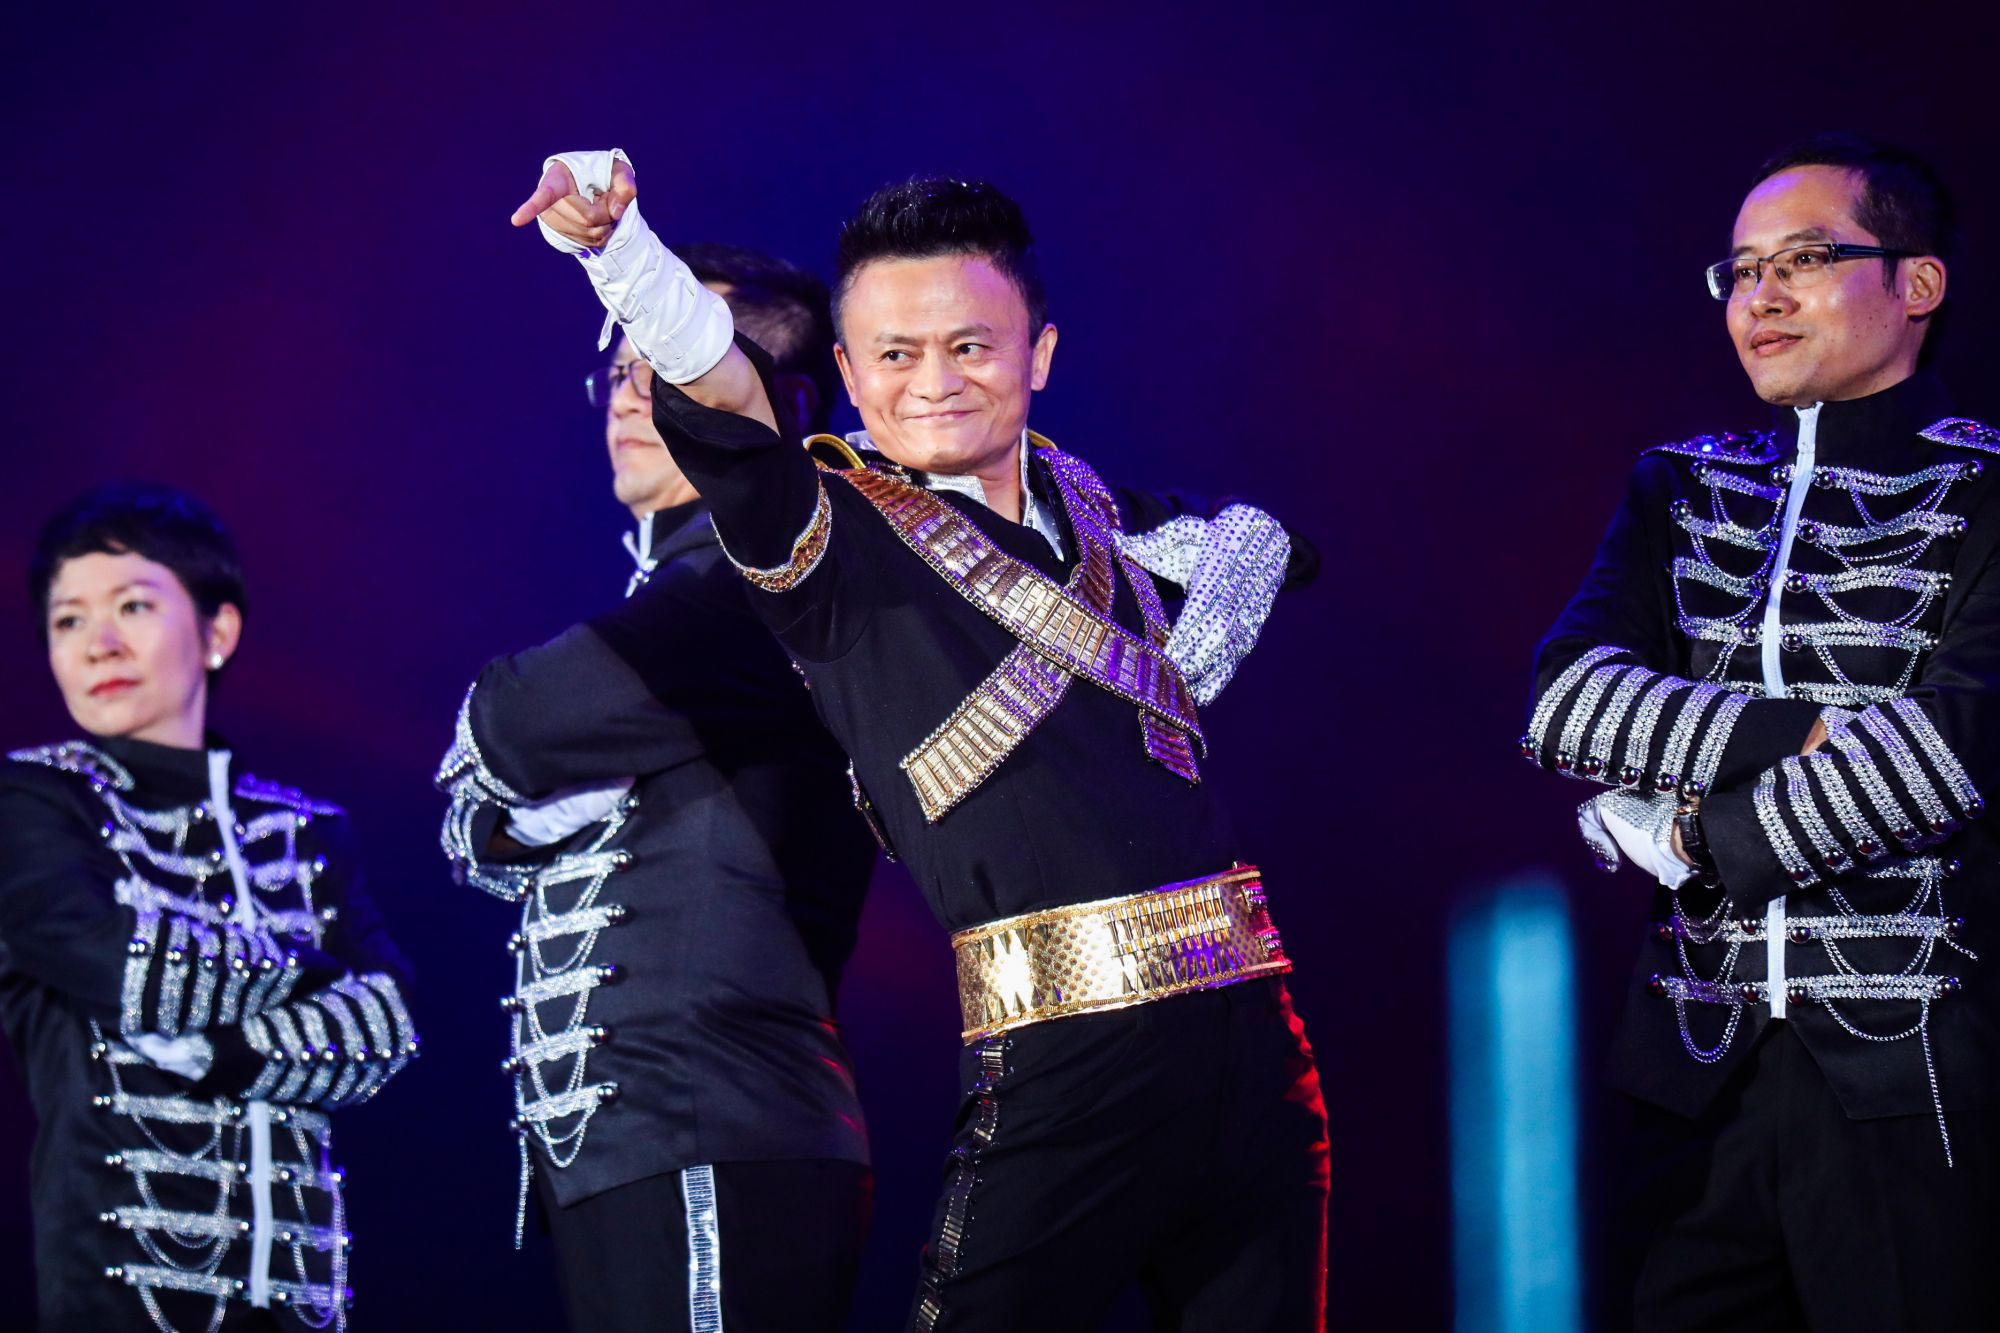 ZHEJIANG, CHINA - SEPTEMBER 08: (CHINA MAINLAND OUT)Jack Ma, founder and chairman of China's e-commerce giant Alibaba dresses as Michael Jackson and dances in the Alibabasannual party celebrating the 18th anniversary of the Alibaba Group in Hangzhou, capital of east China's Zhejiang Province, Sept. 8, 2017. About 40,000 Alibaba employees from 21countries and regions attended the party. (Photo by TPG/Getty Images)